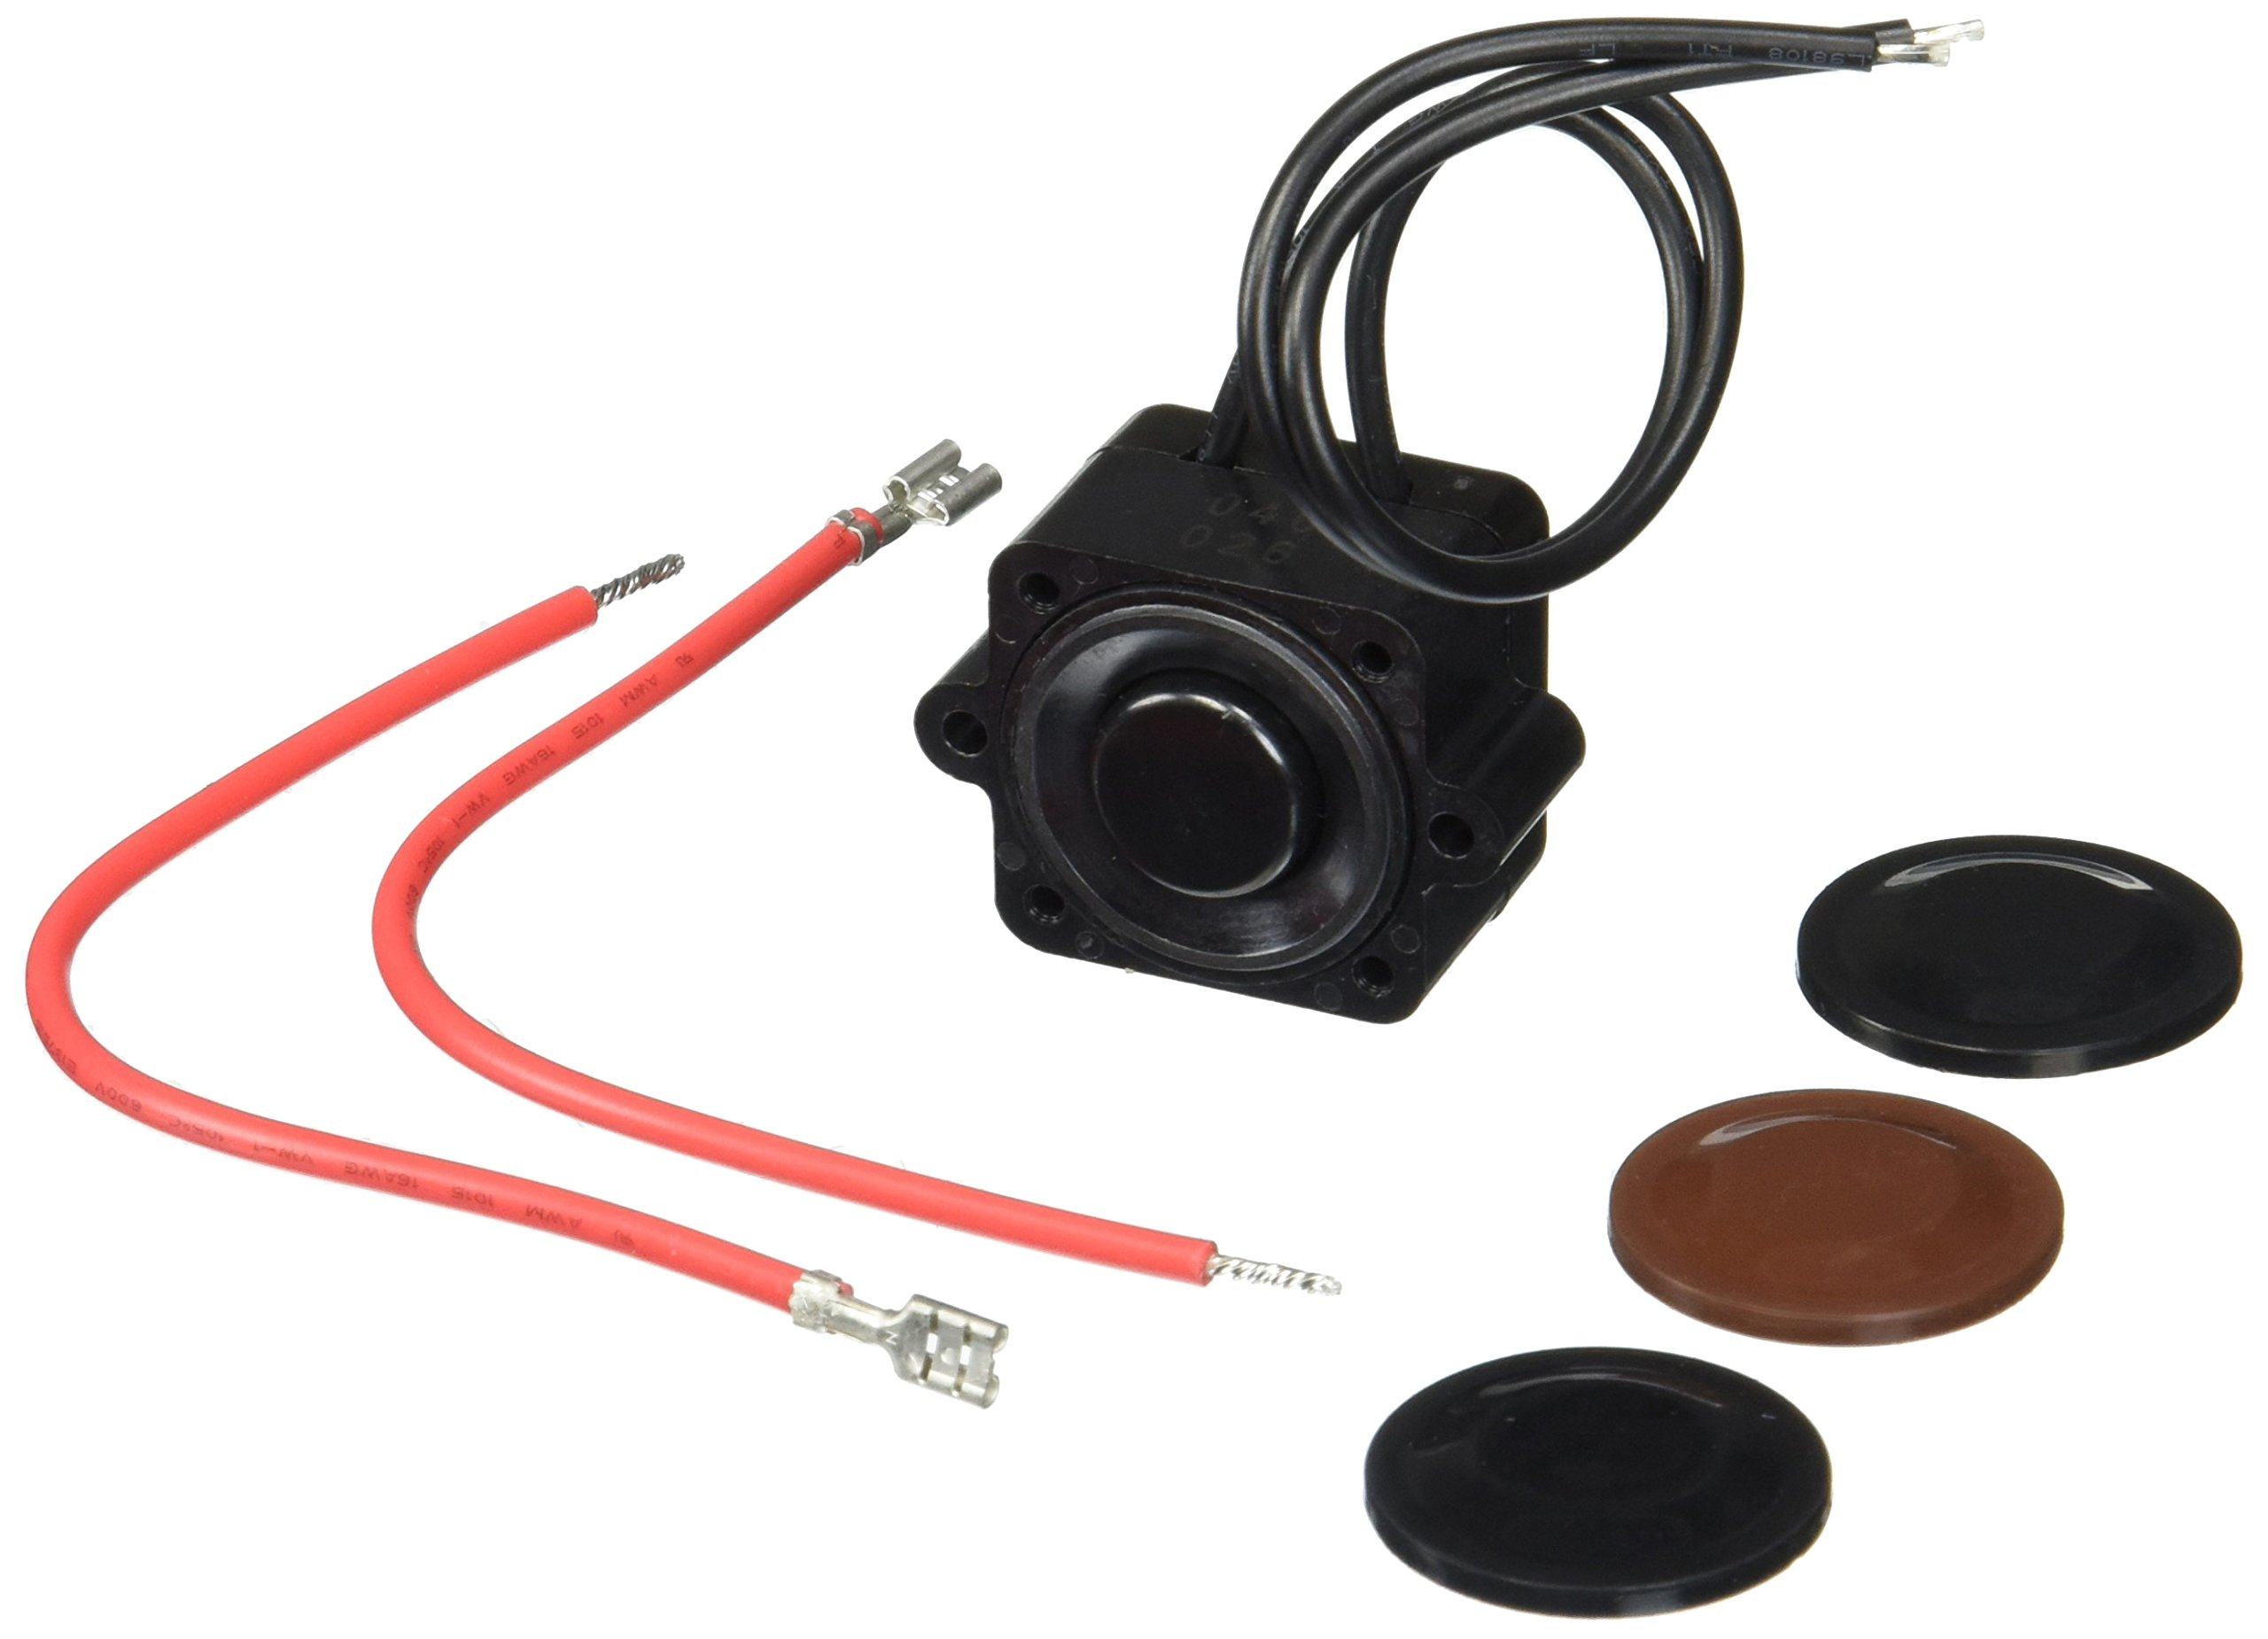 Jabsco Flojet 02090118 40 PSI Pump Switch Kit